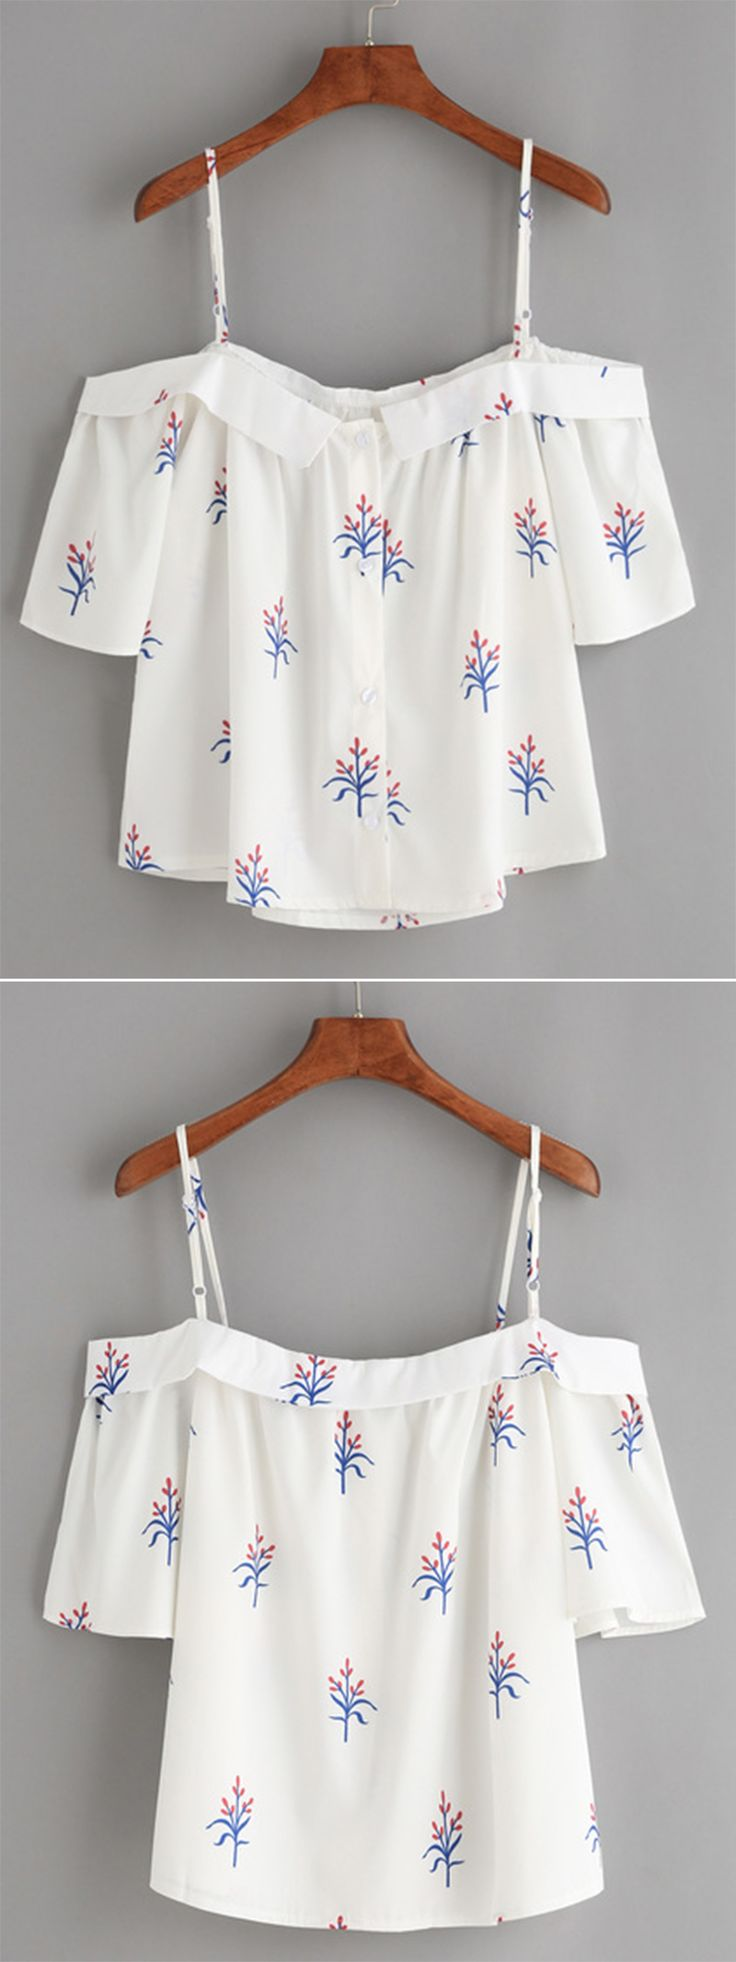 White Fold Over Cold Shoulder Flower Print Top                                                                                                                                                                                 Más